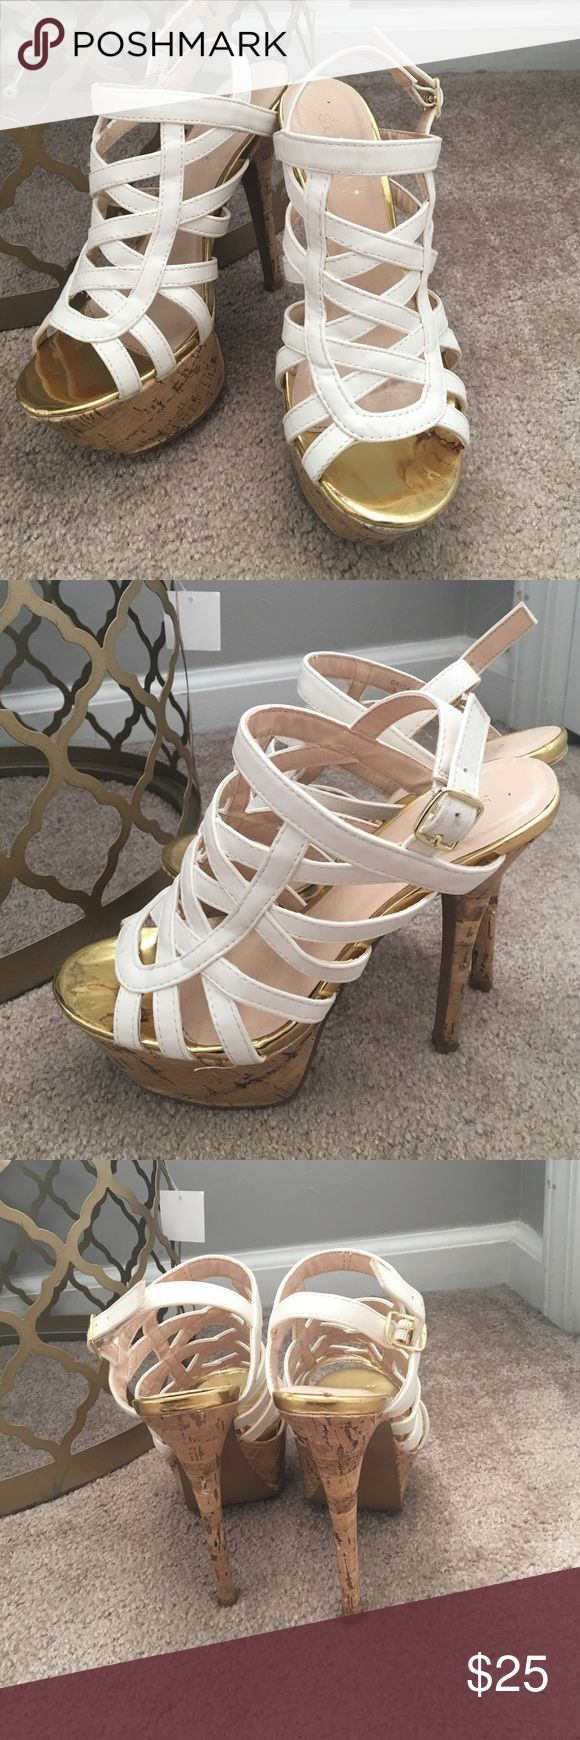 White and gold heels Worn maybe once, excellent condition Shoe Dazzle Shoes Heels